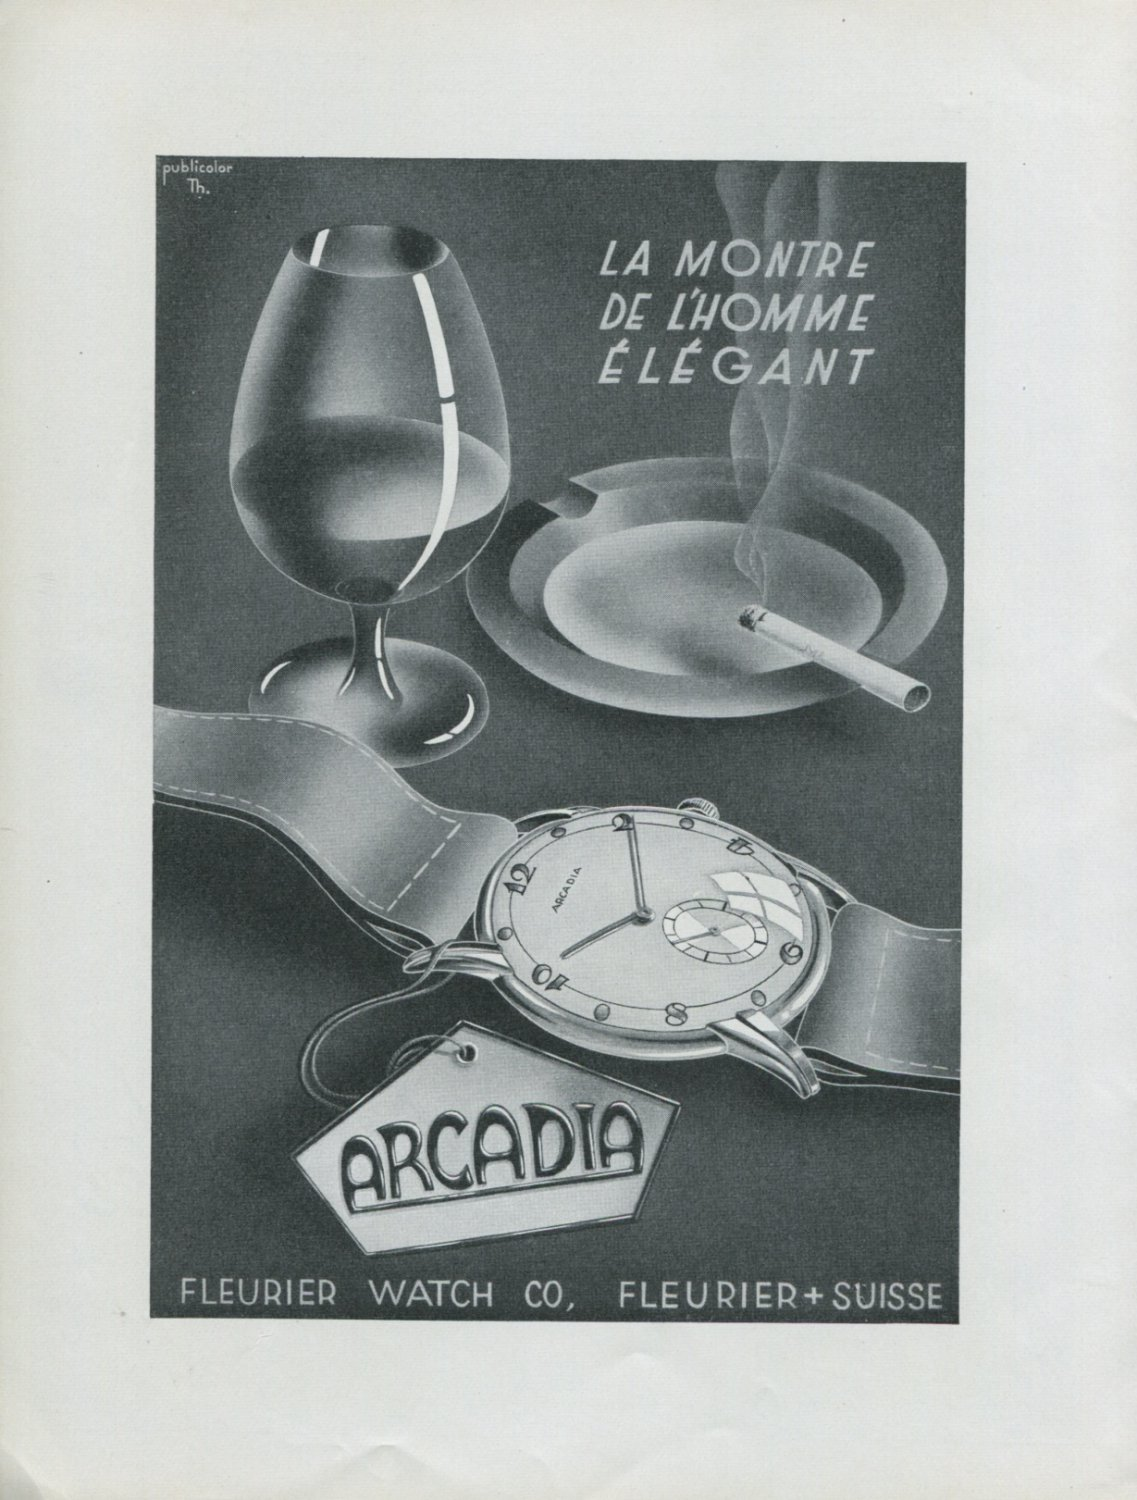 1948 Fleurier Watch Company Arcadia Watch Co Switzerland Swiss Advert Publicite Suisse Montres CH